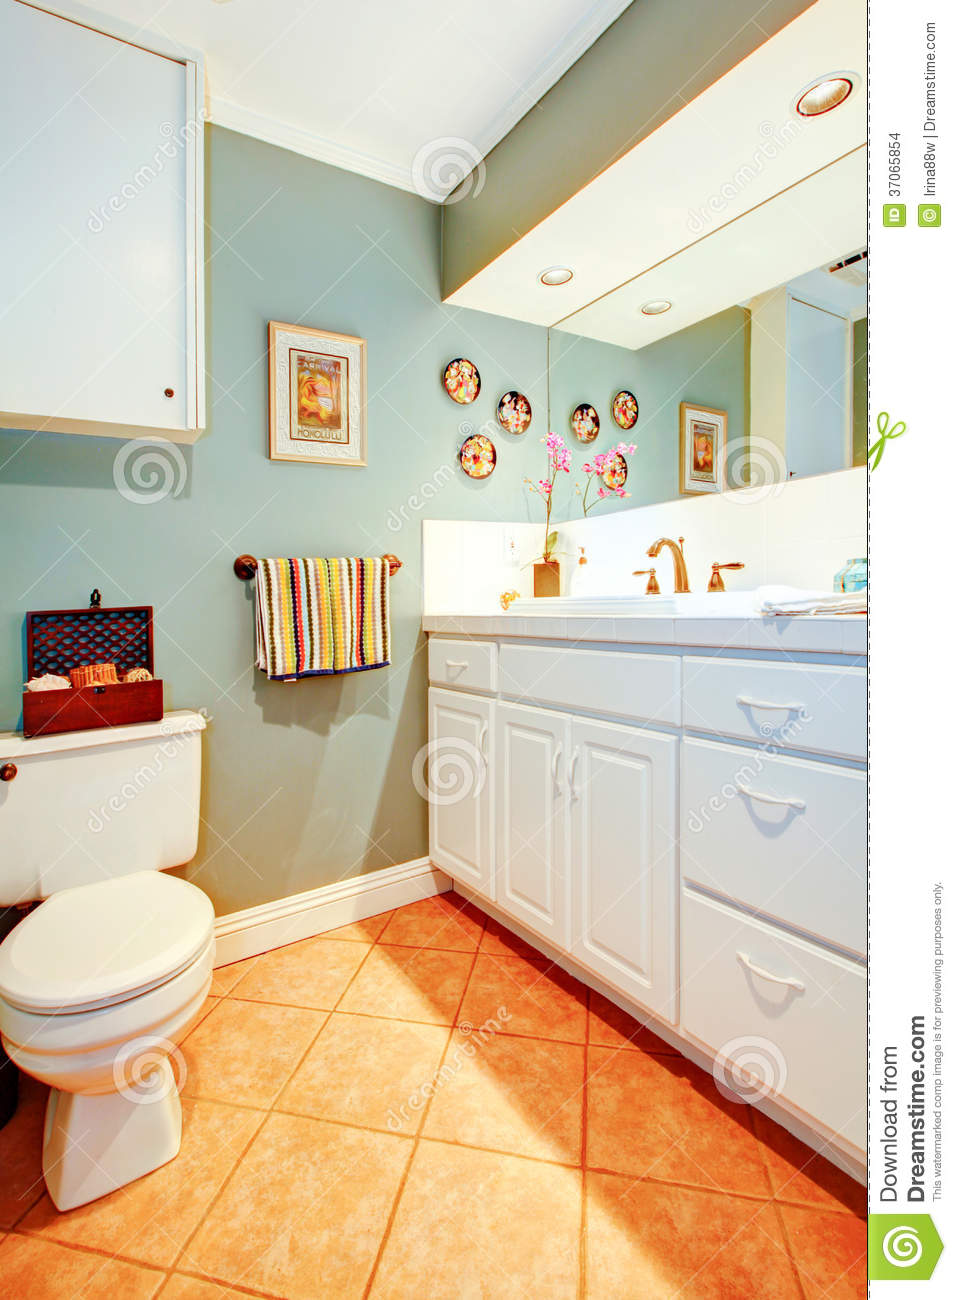 Bright cozy bathroom with white wood cabinets. Bright Cozy Bathroom With White Wood Cabinets Stock Images   Image